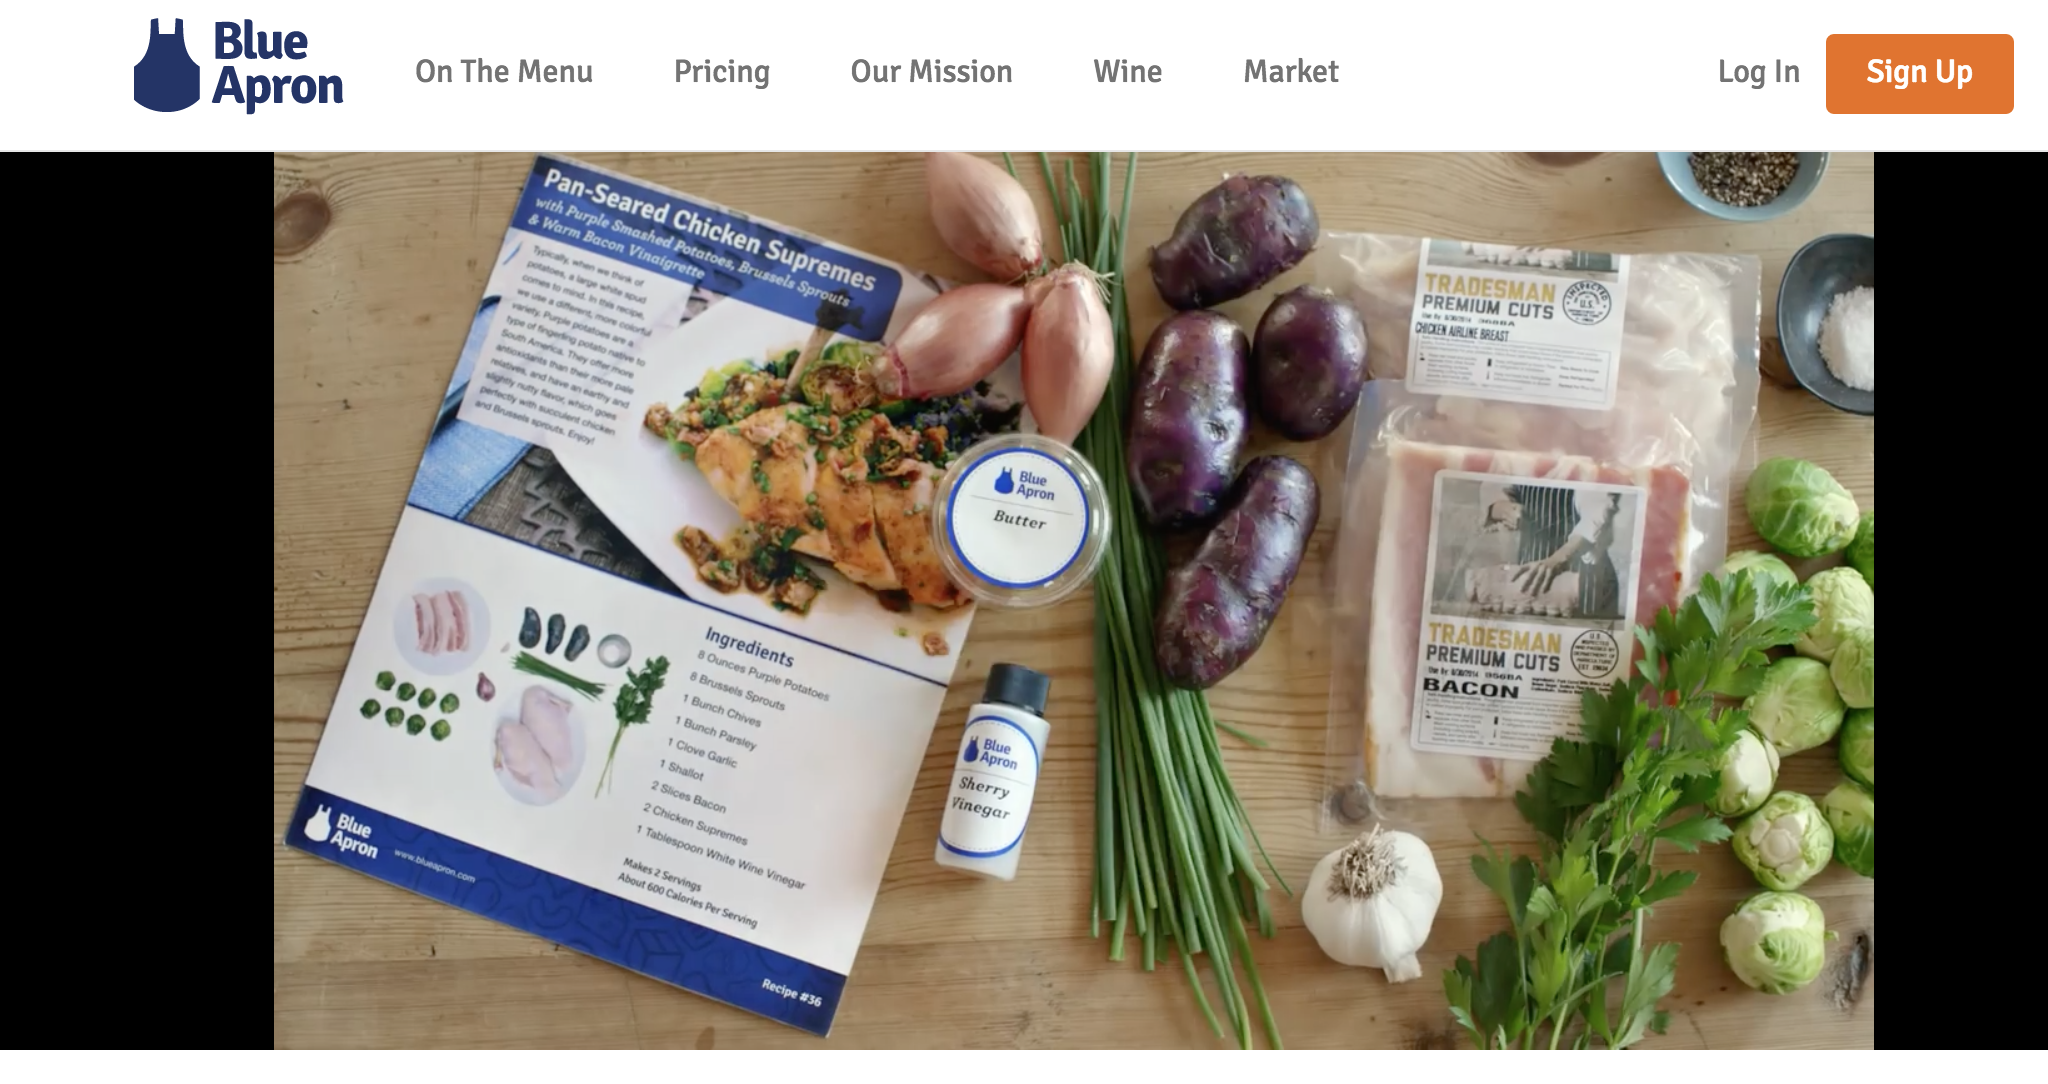 Blue apron industry